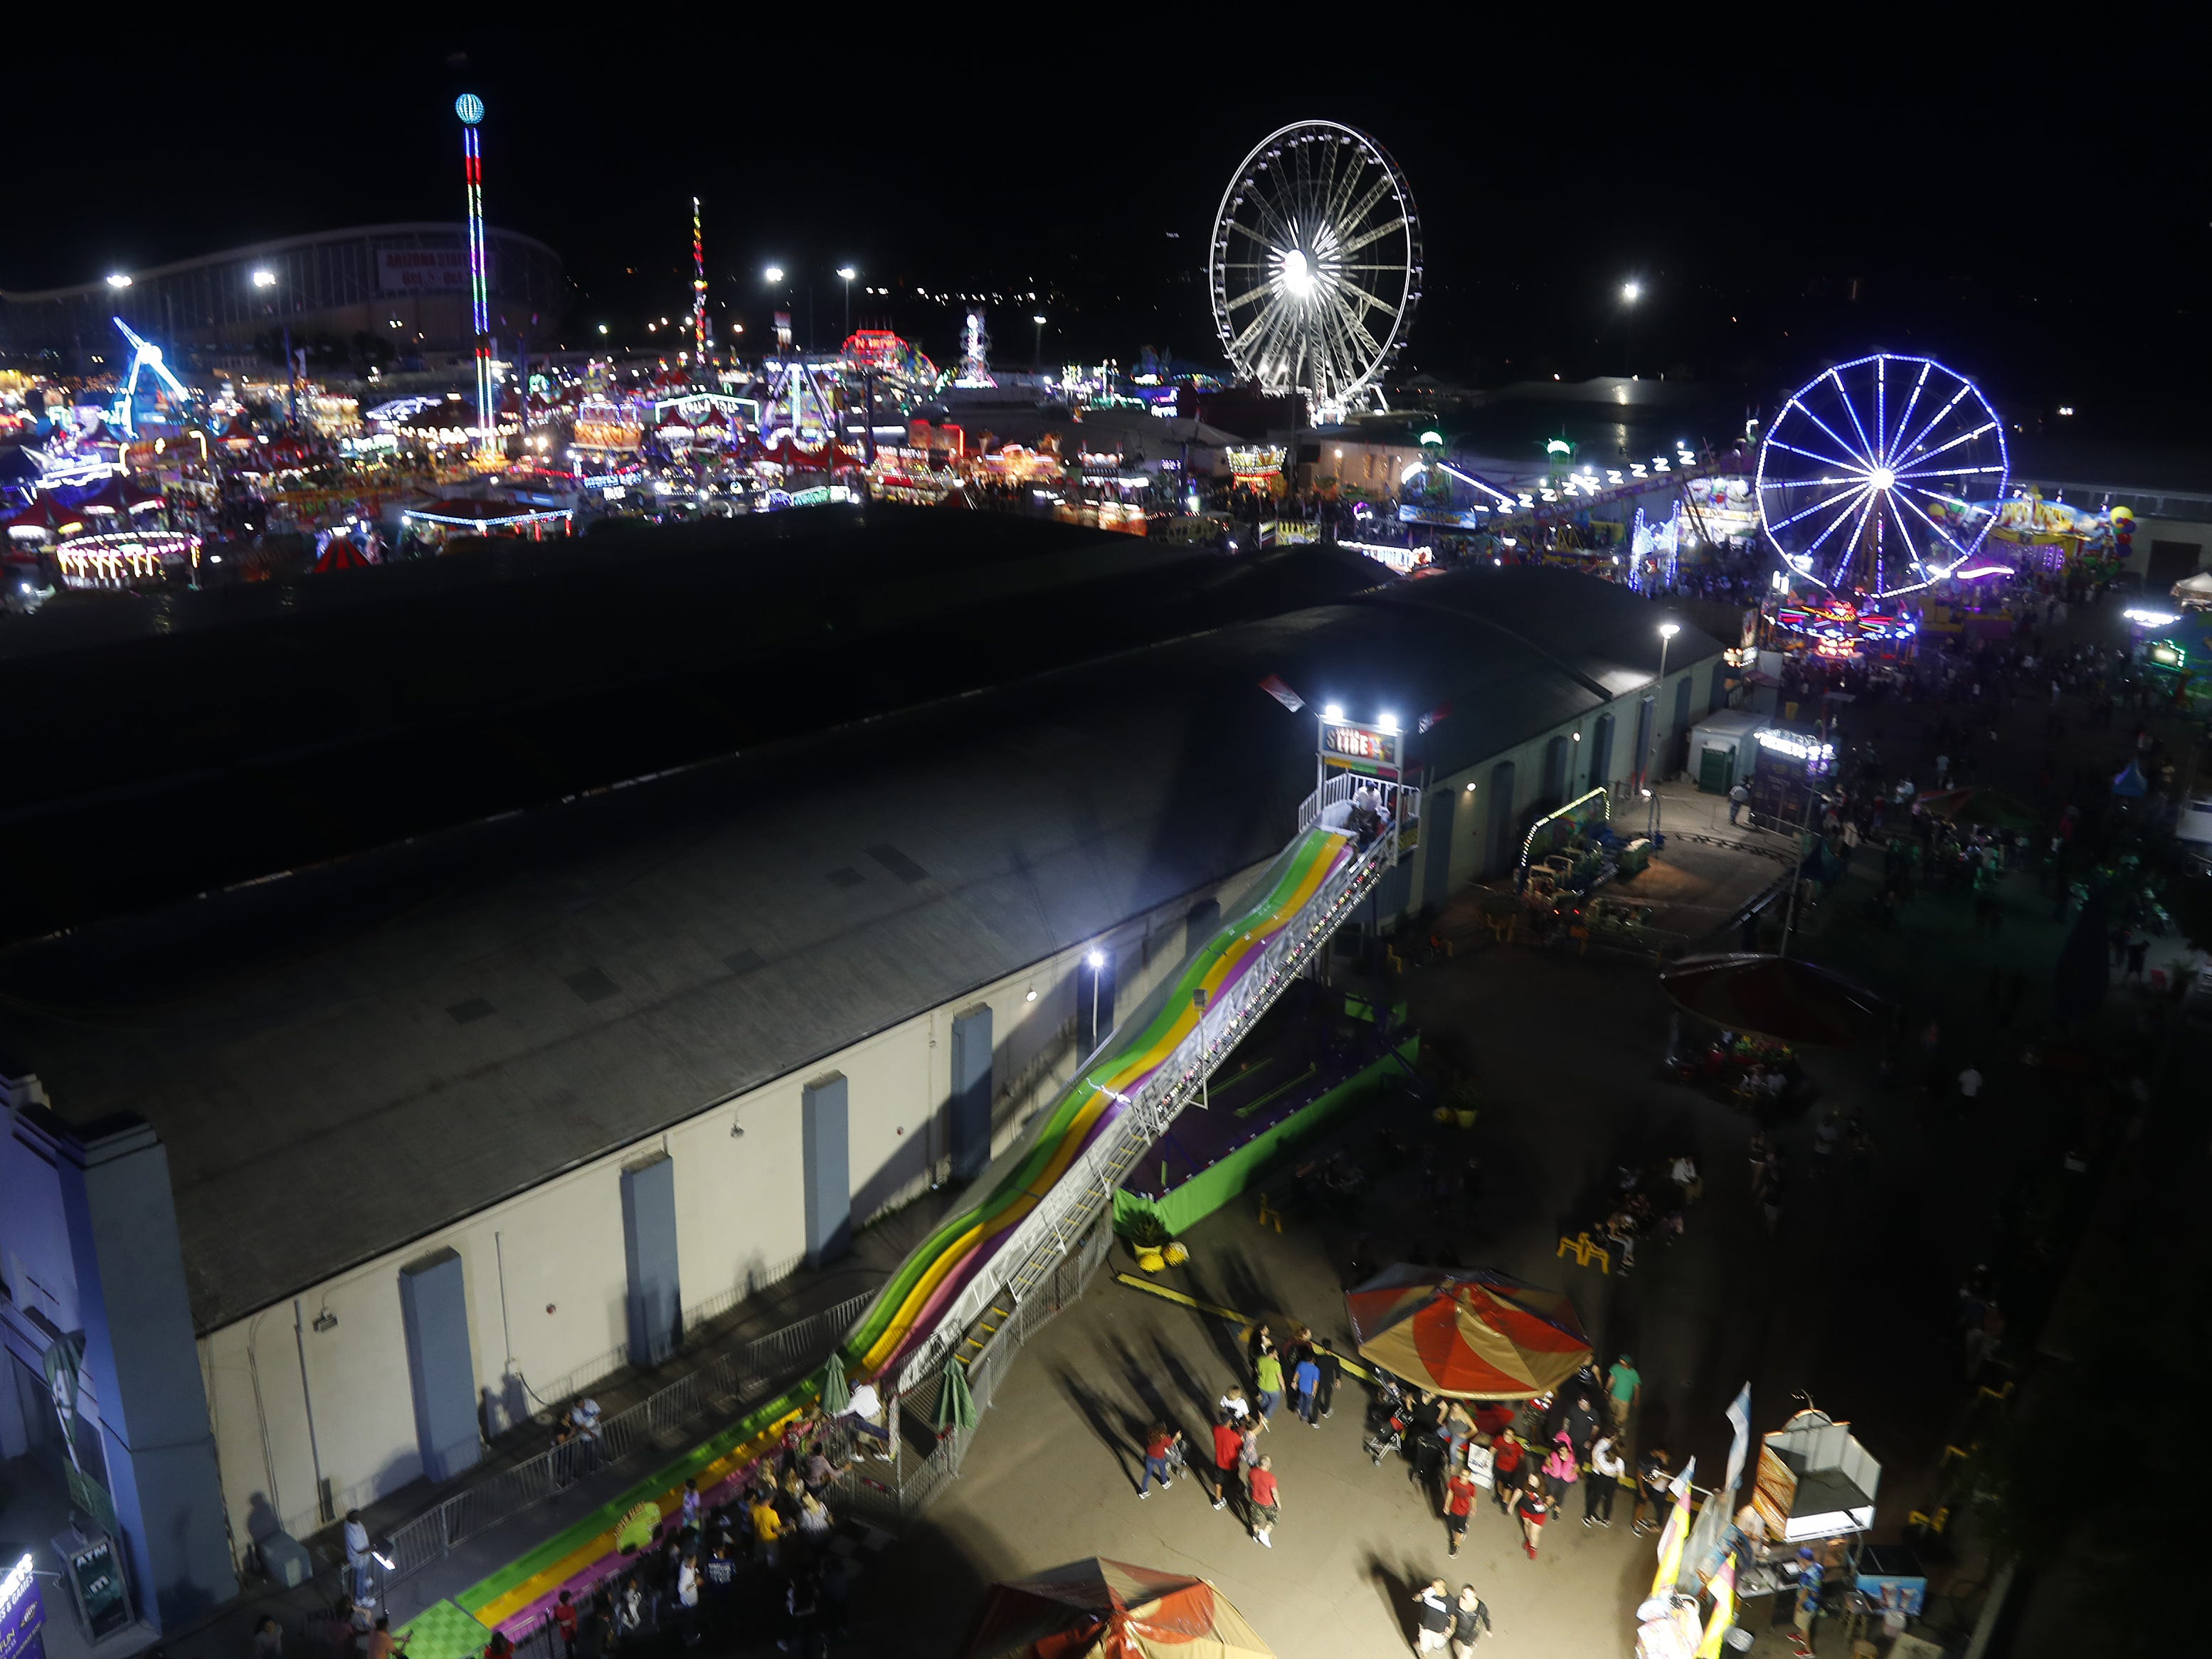 Rides light up the sky at the Arizona State Fair in Phoenix, Ariz. on October 21, 2018.